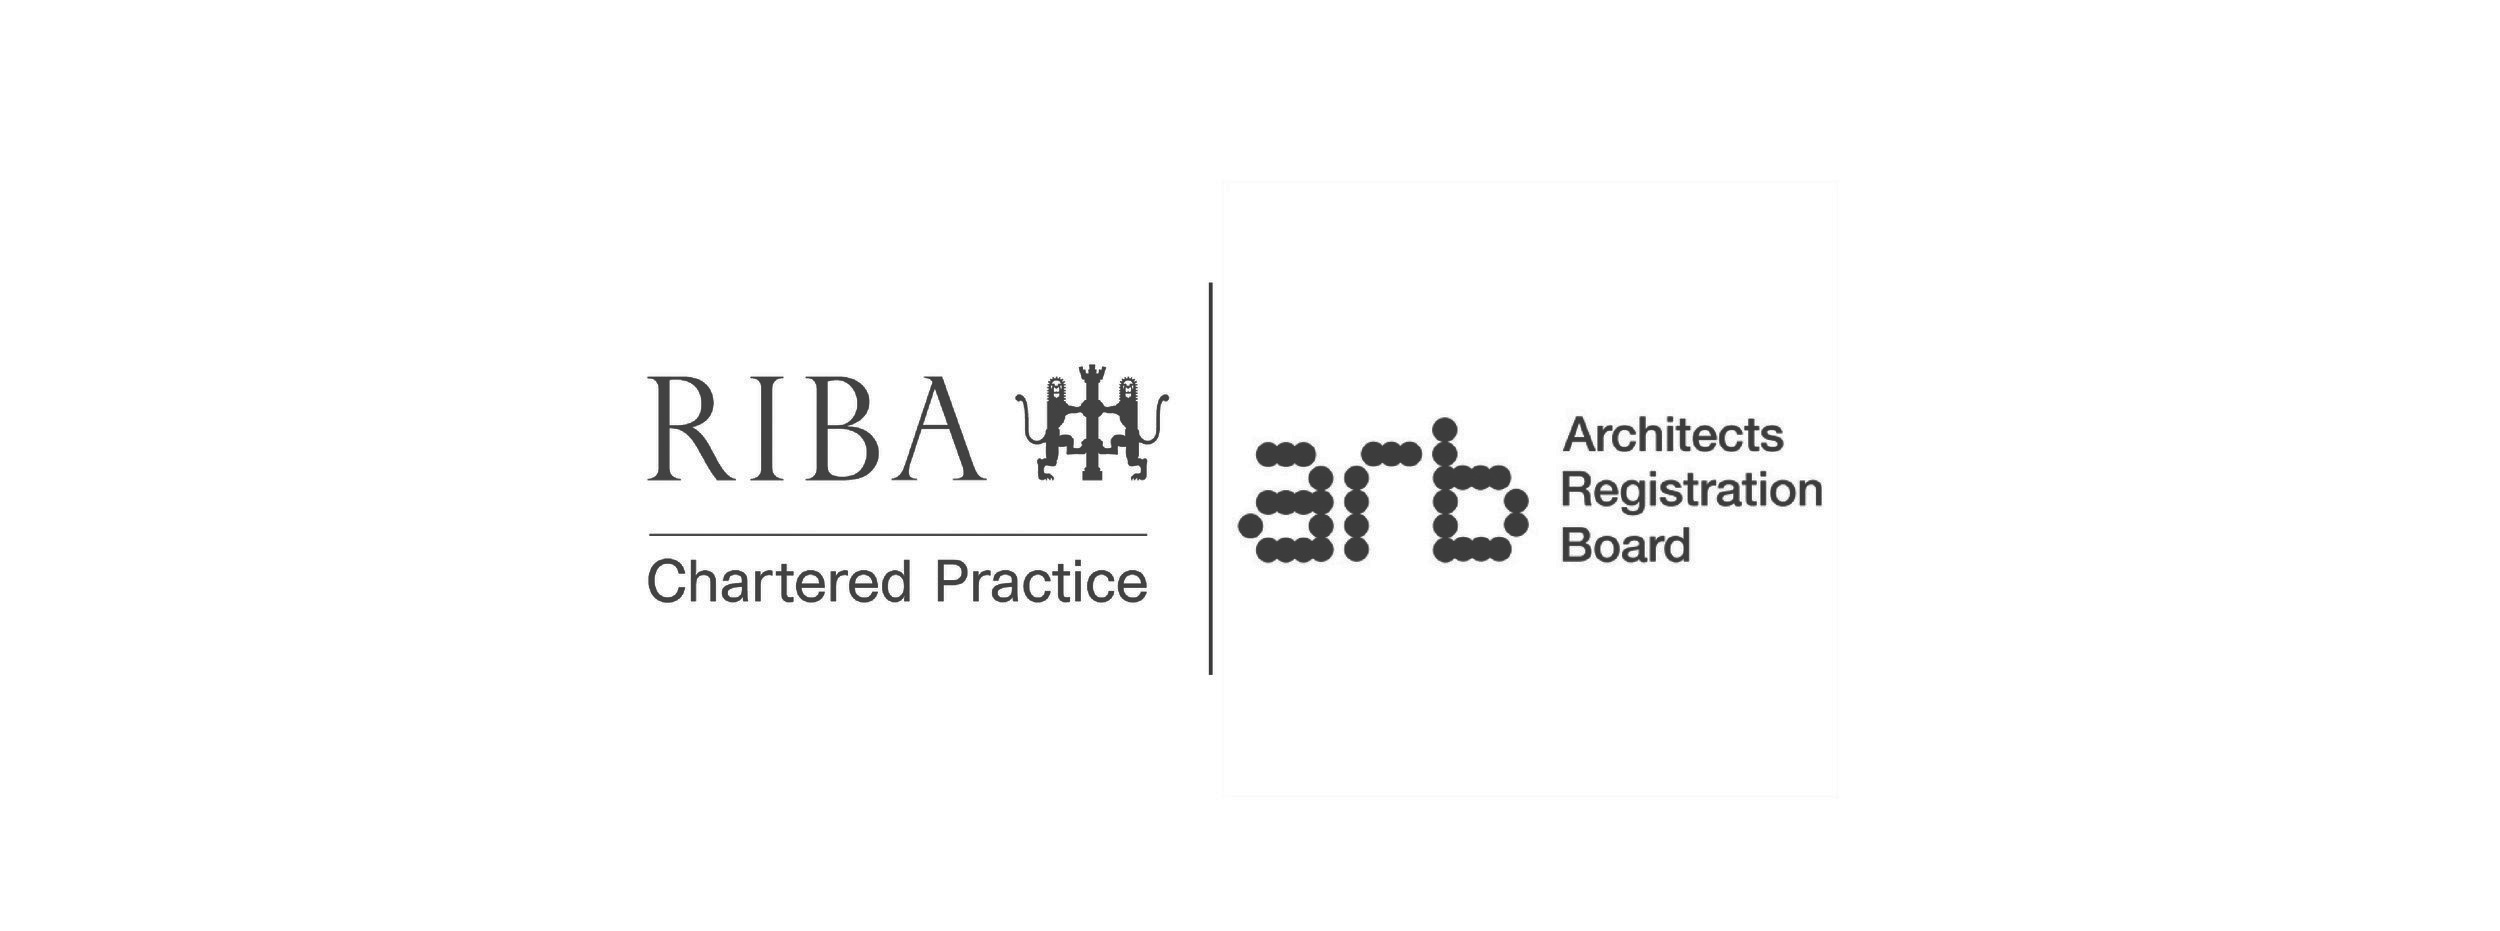 RIBA CHARTERED PRACTICE AND ARB